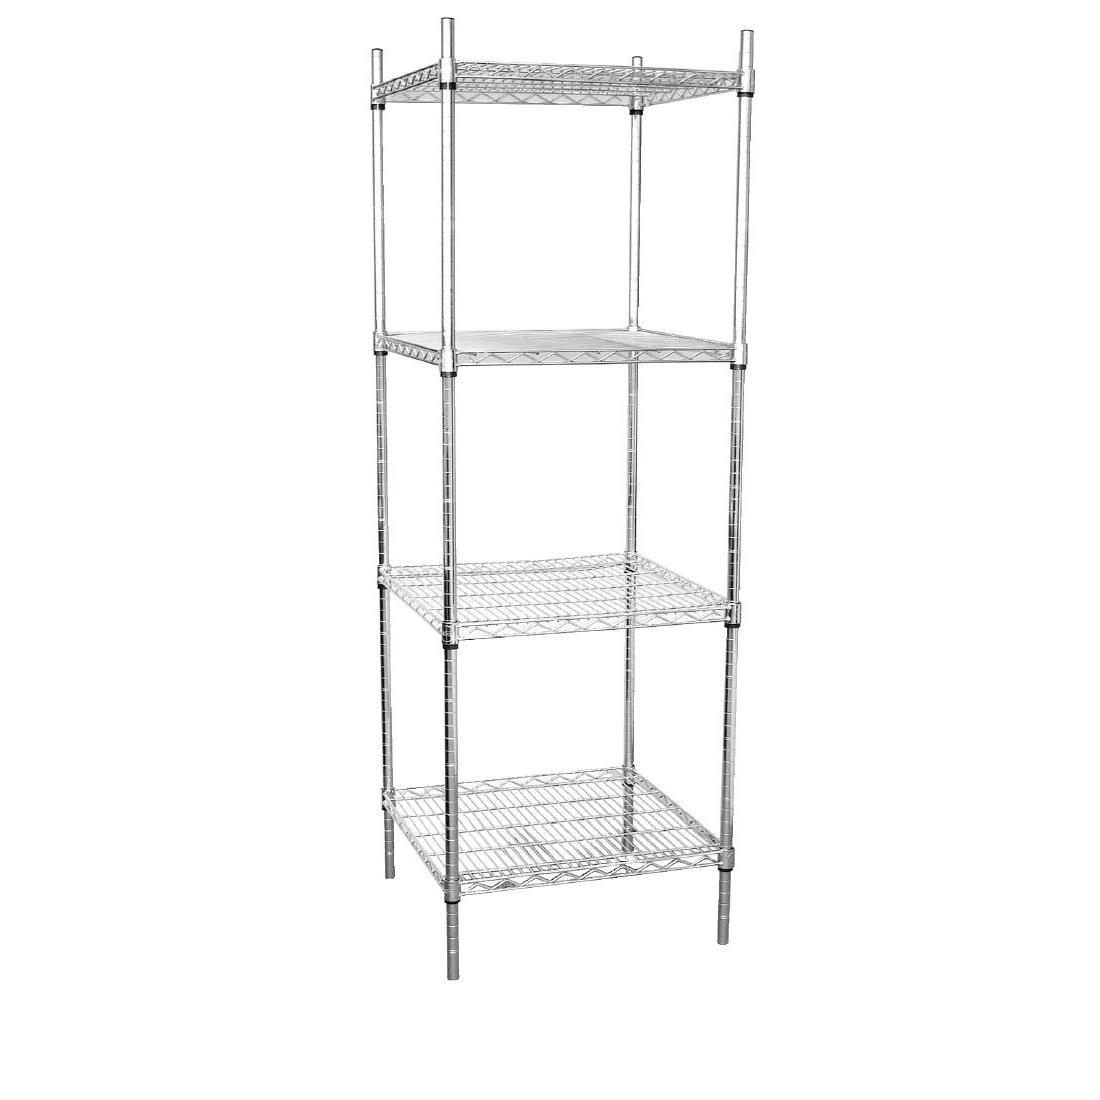 Vogue 4 Tier Wire Tower Unit 610x610mm - U884